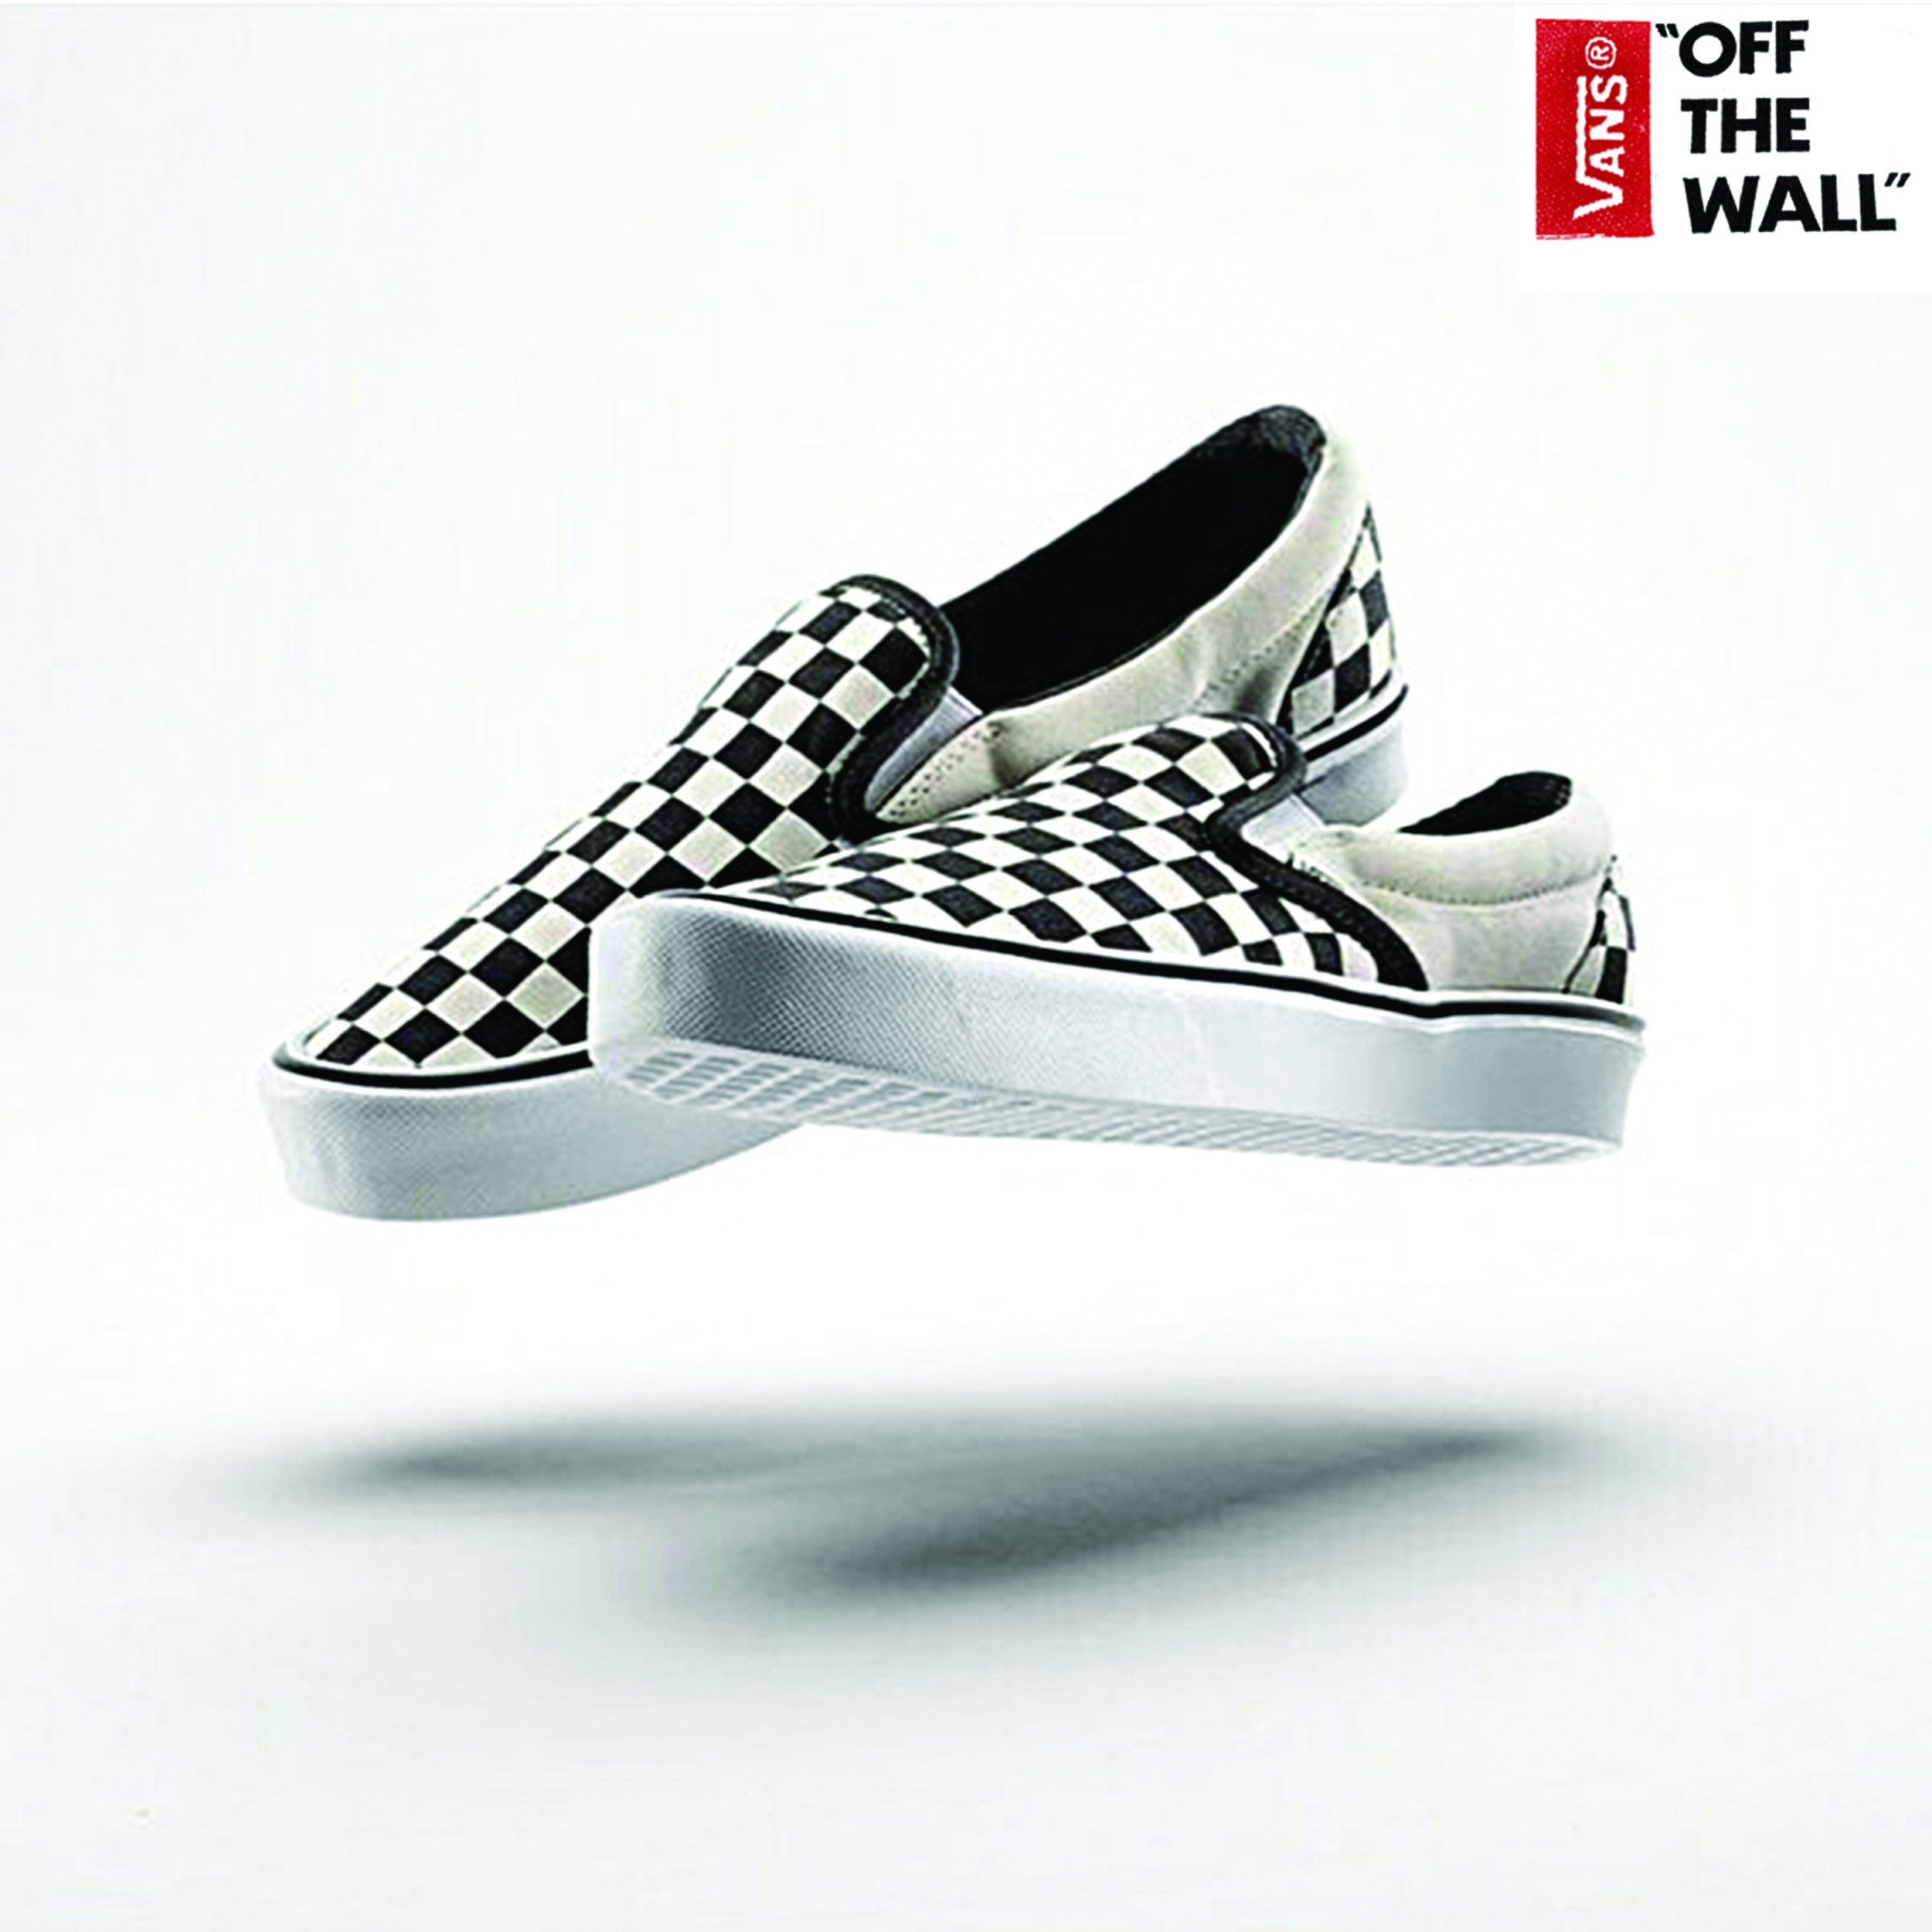 ef59bb1834 Vans Reengineers Iconic Footwear to Release an Expanded Range of ...